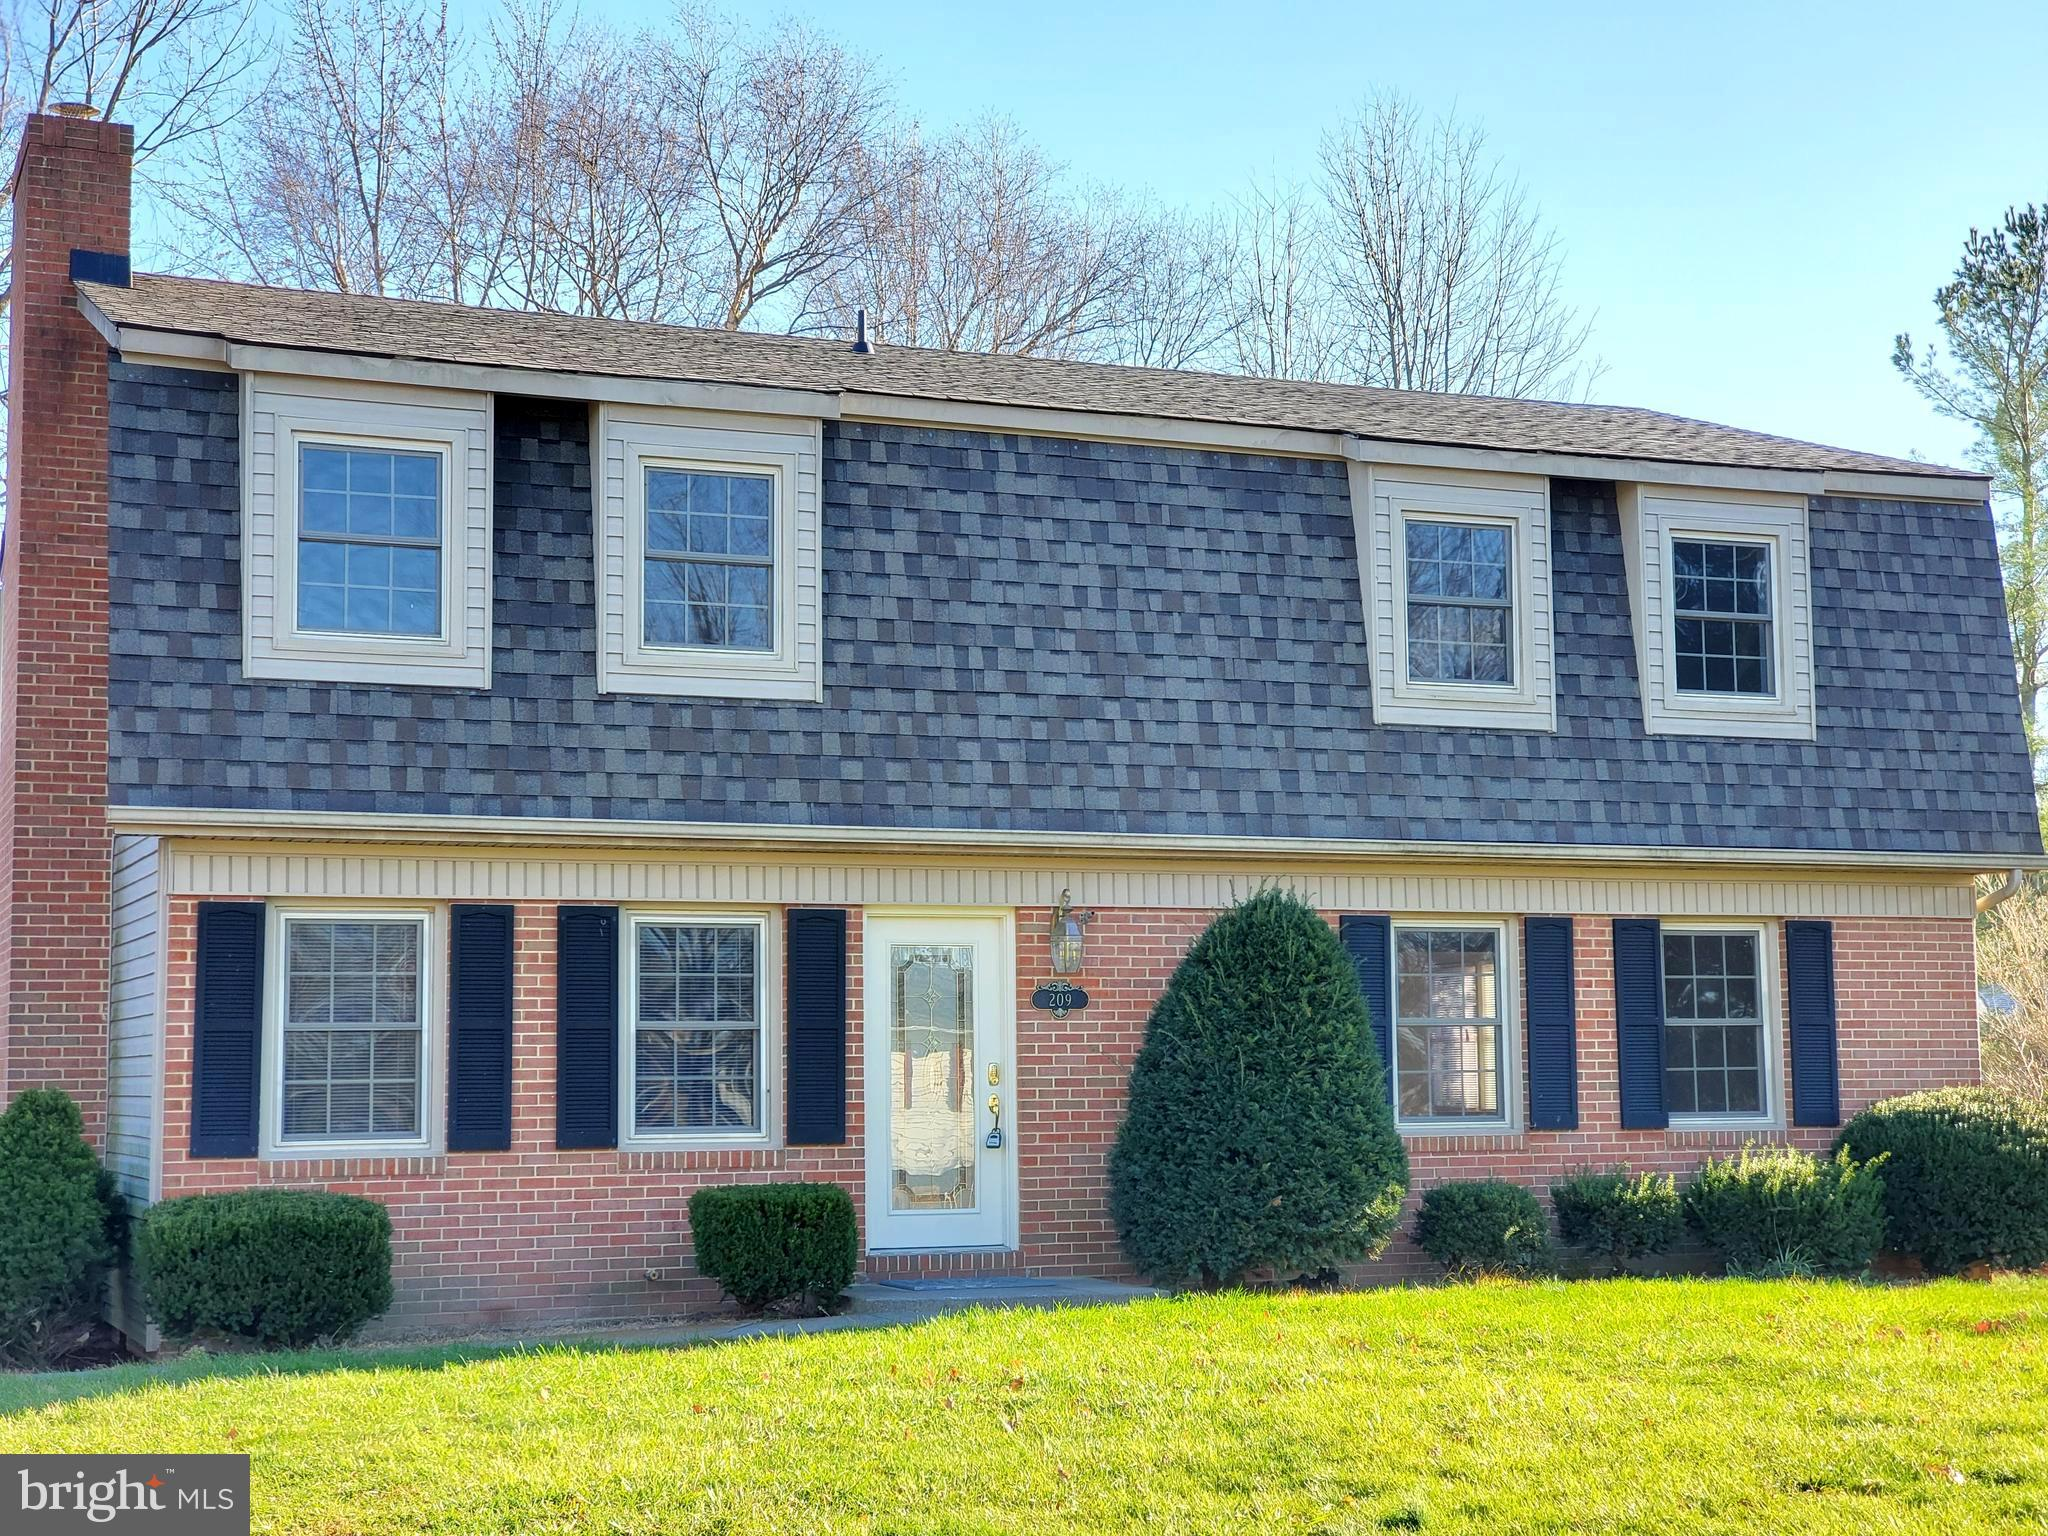 BRAND NEW HVAC 2019!  FRESH PAINT! GREAT LOCATION!  Cozy brick front colonial style home with over 2